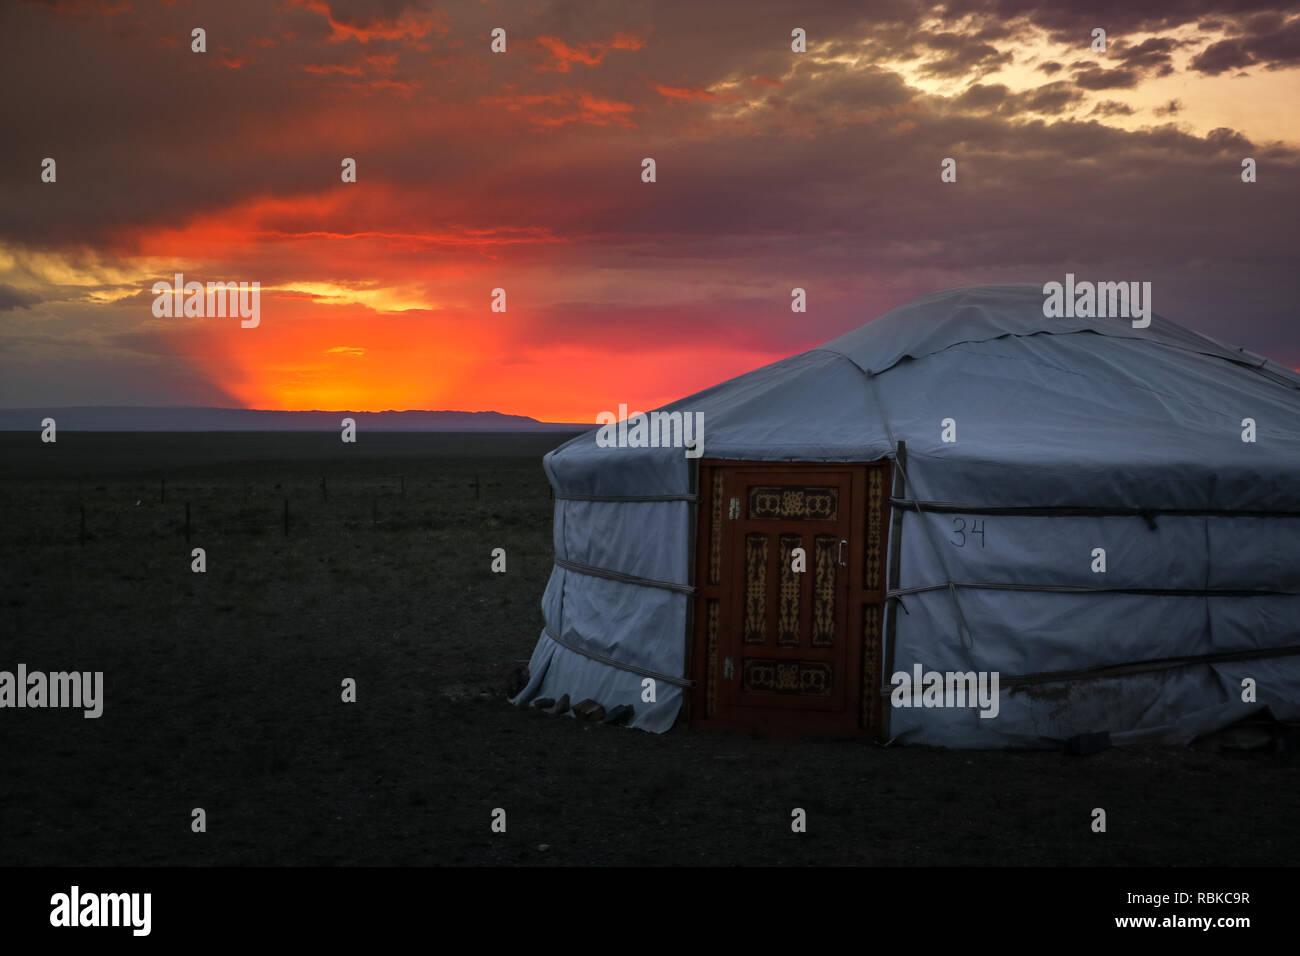 Traditional Mongolian housing / yurt at sunset with dramatic cloudy sky in the Gobi Desert near the Flaming Cliffs (Bajandsag, Gobi Desert, Mongolia) Stock Photo